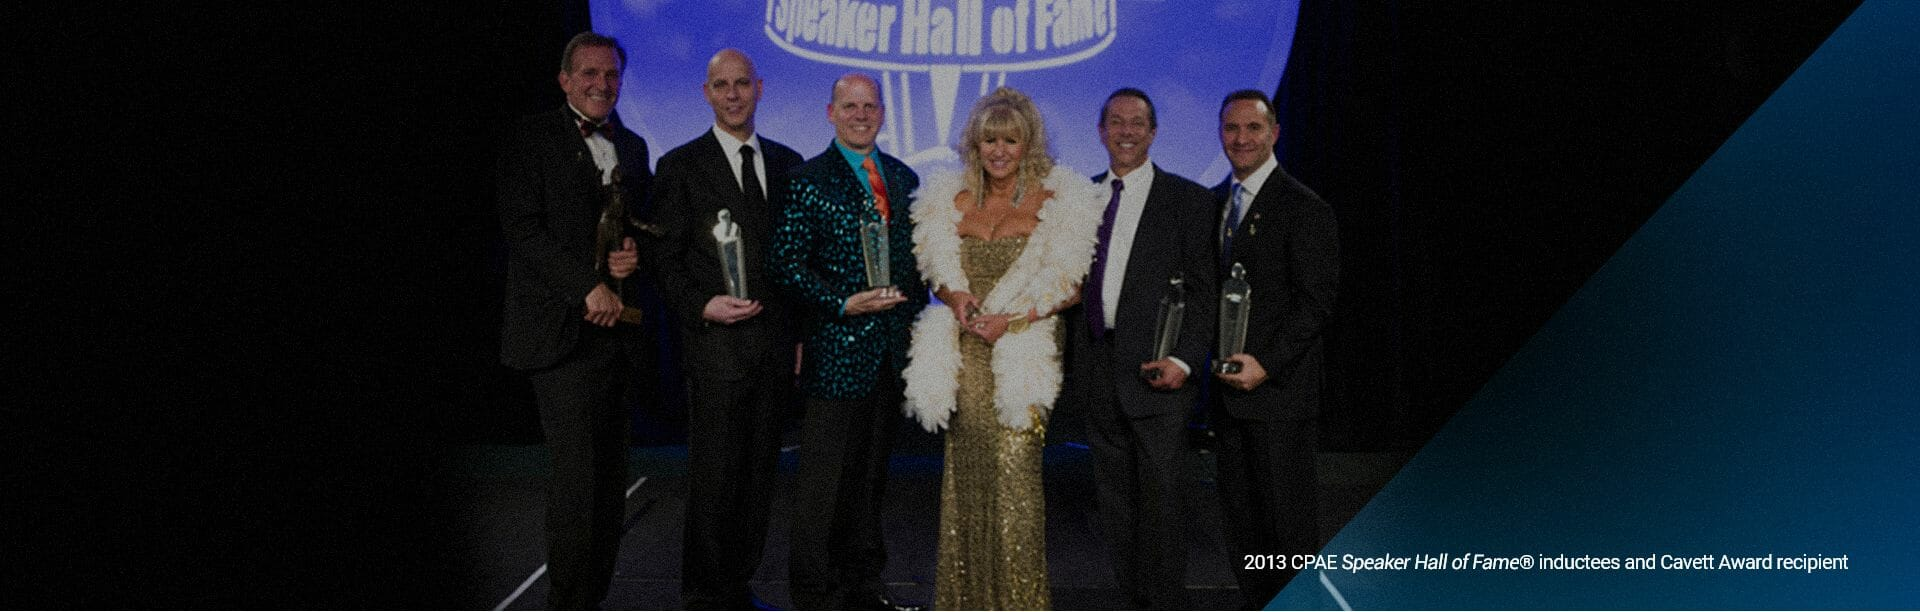 2013 CPAE Speaker Hall of Fame Inductees and Cavett Award recipient